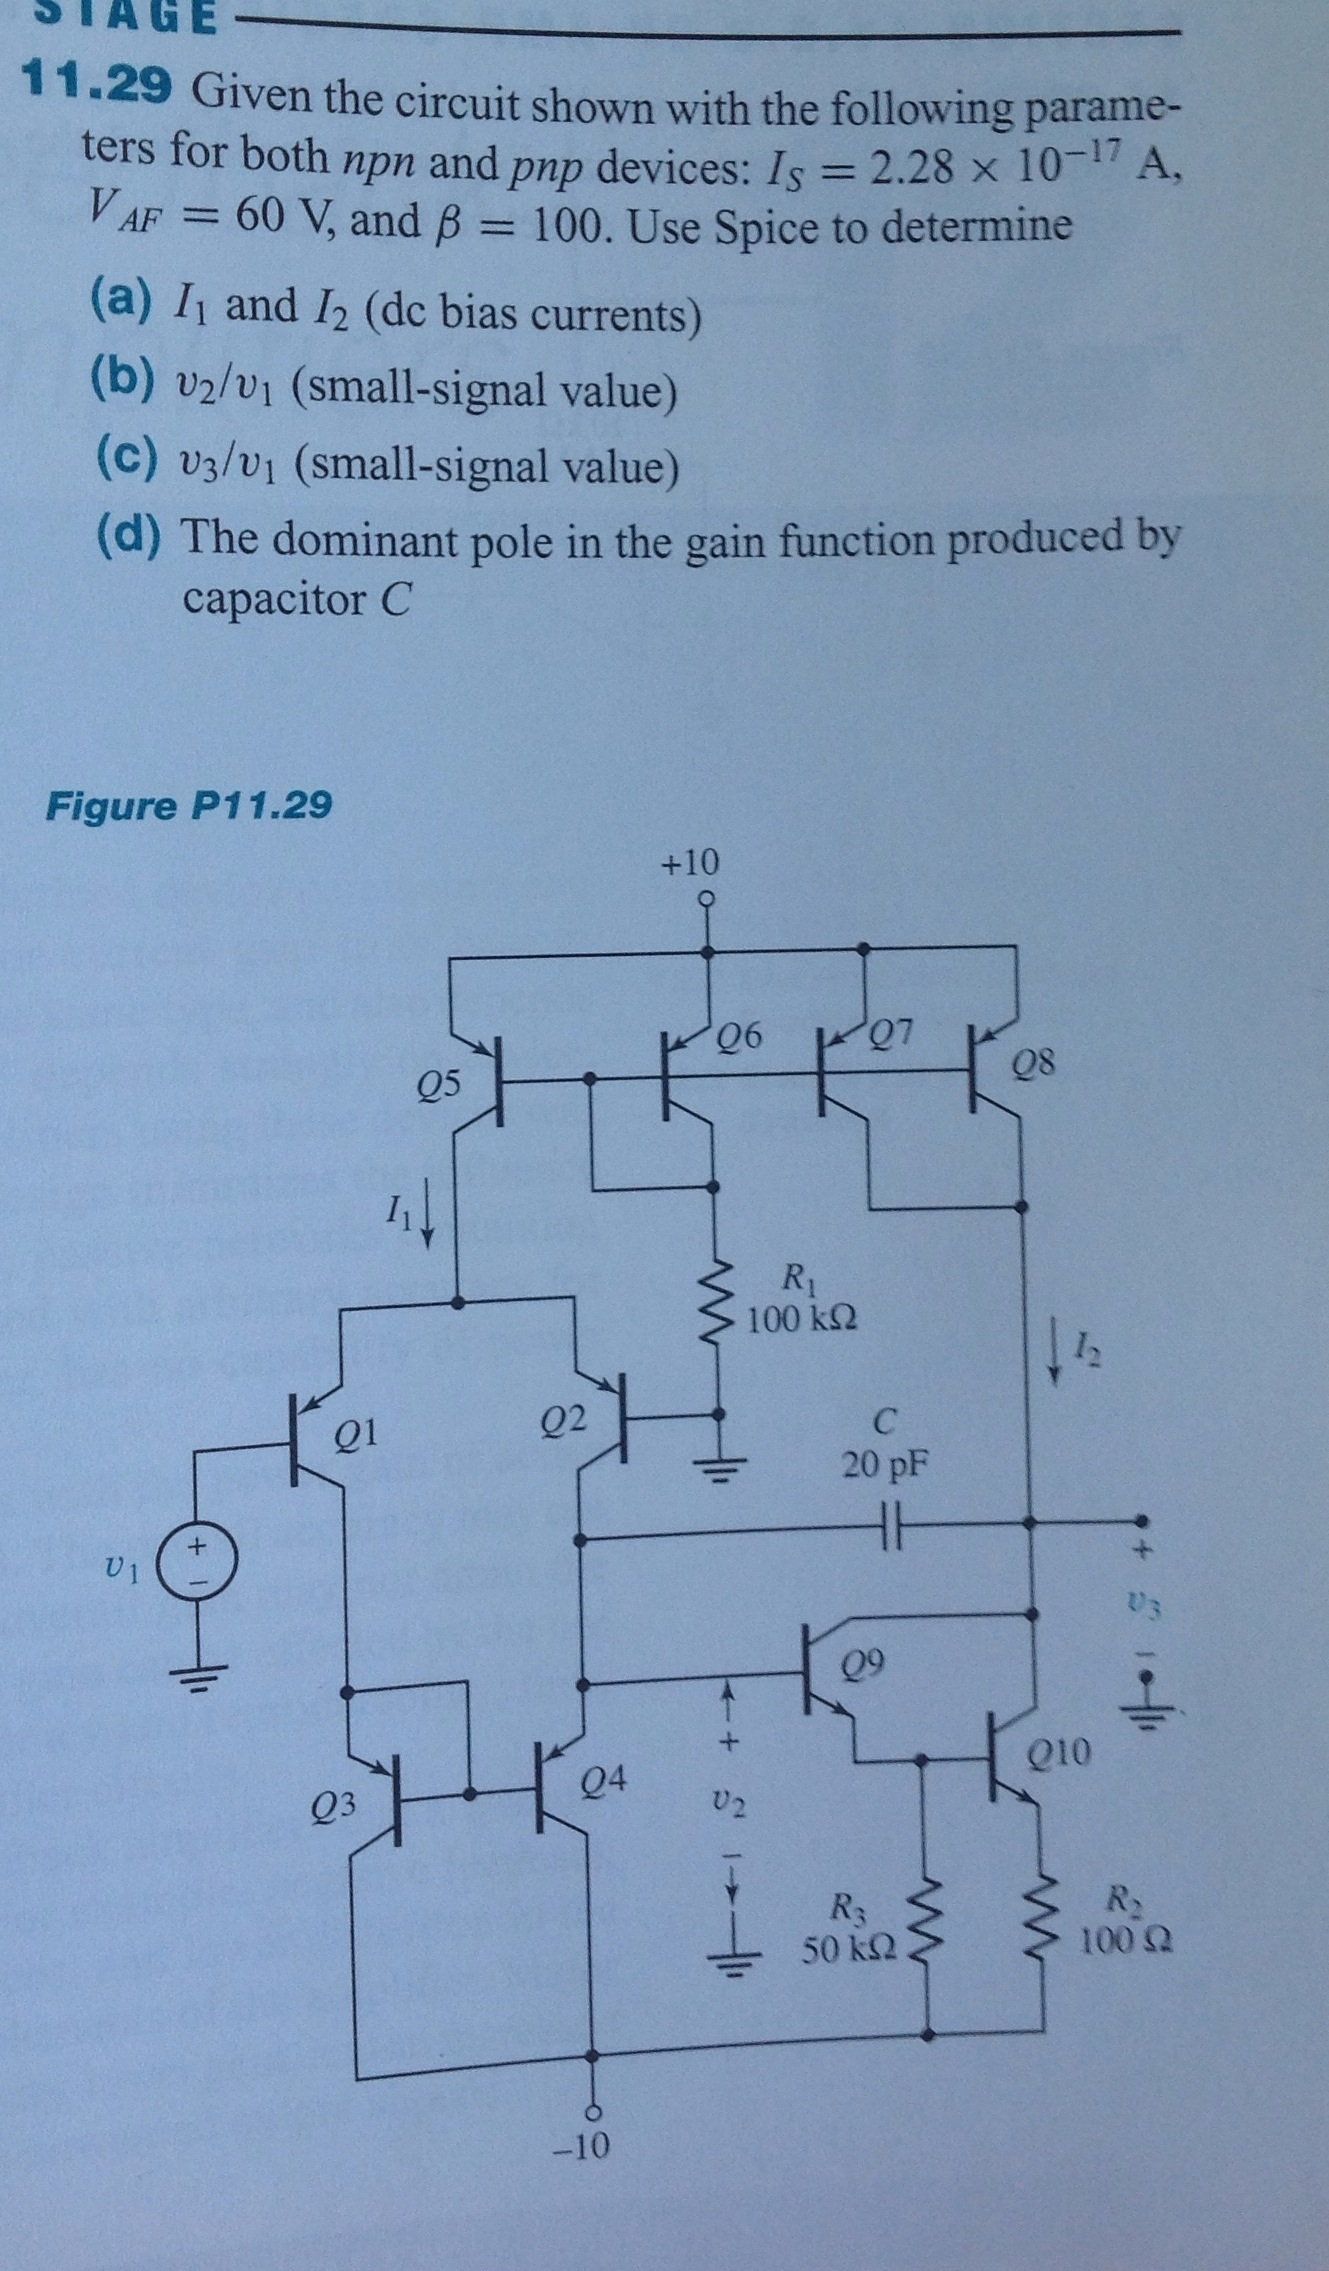 1 29 Given The Circuit Shown With Following Pnp Prox Switch Wiring Diagram Question Parameters For Both Npn And Devices Is 2